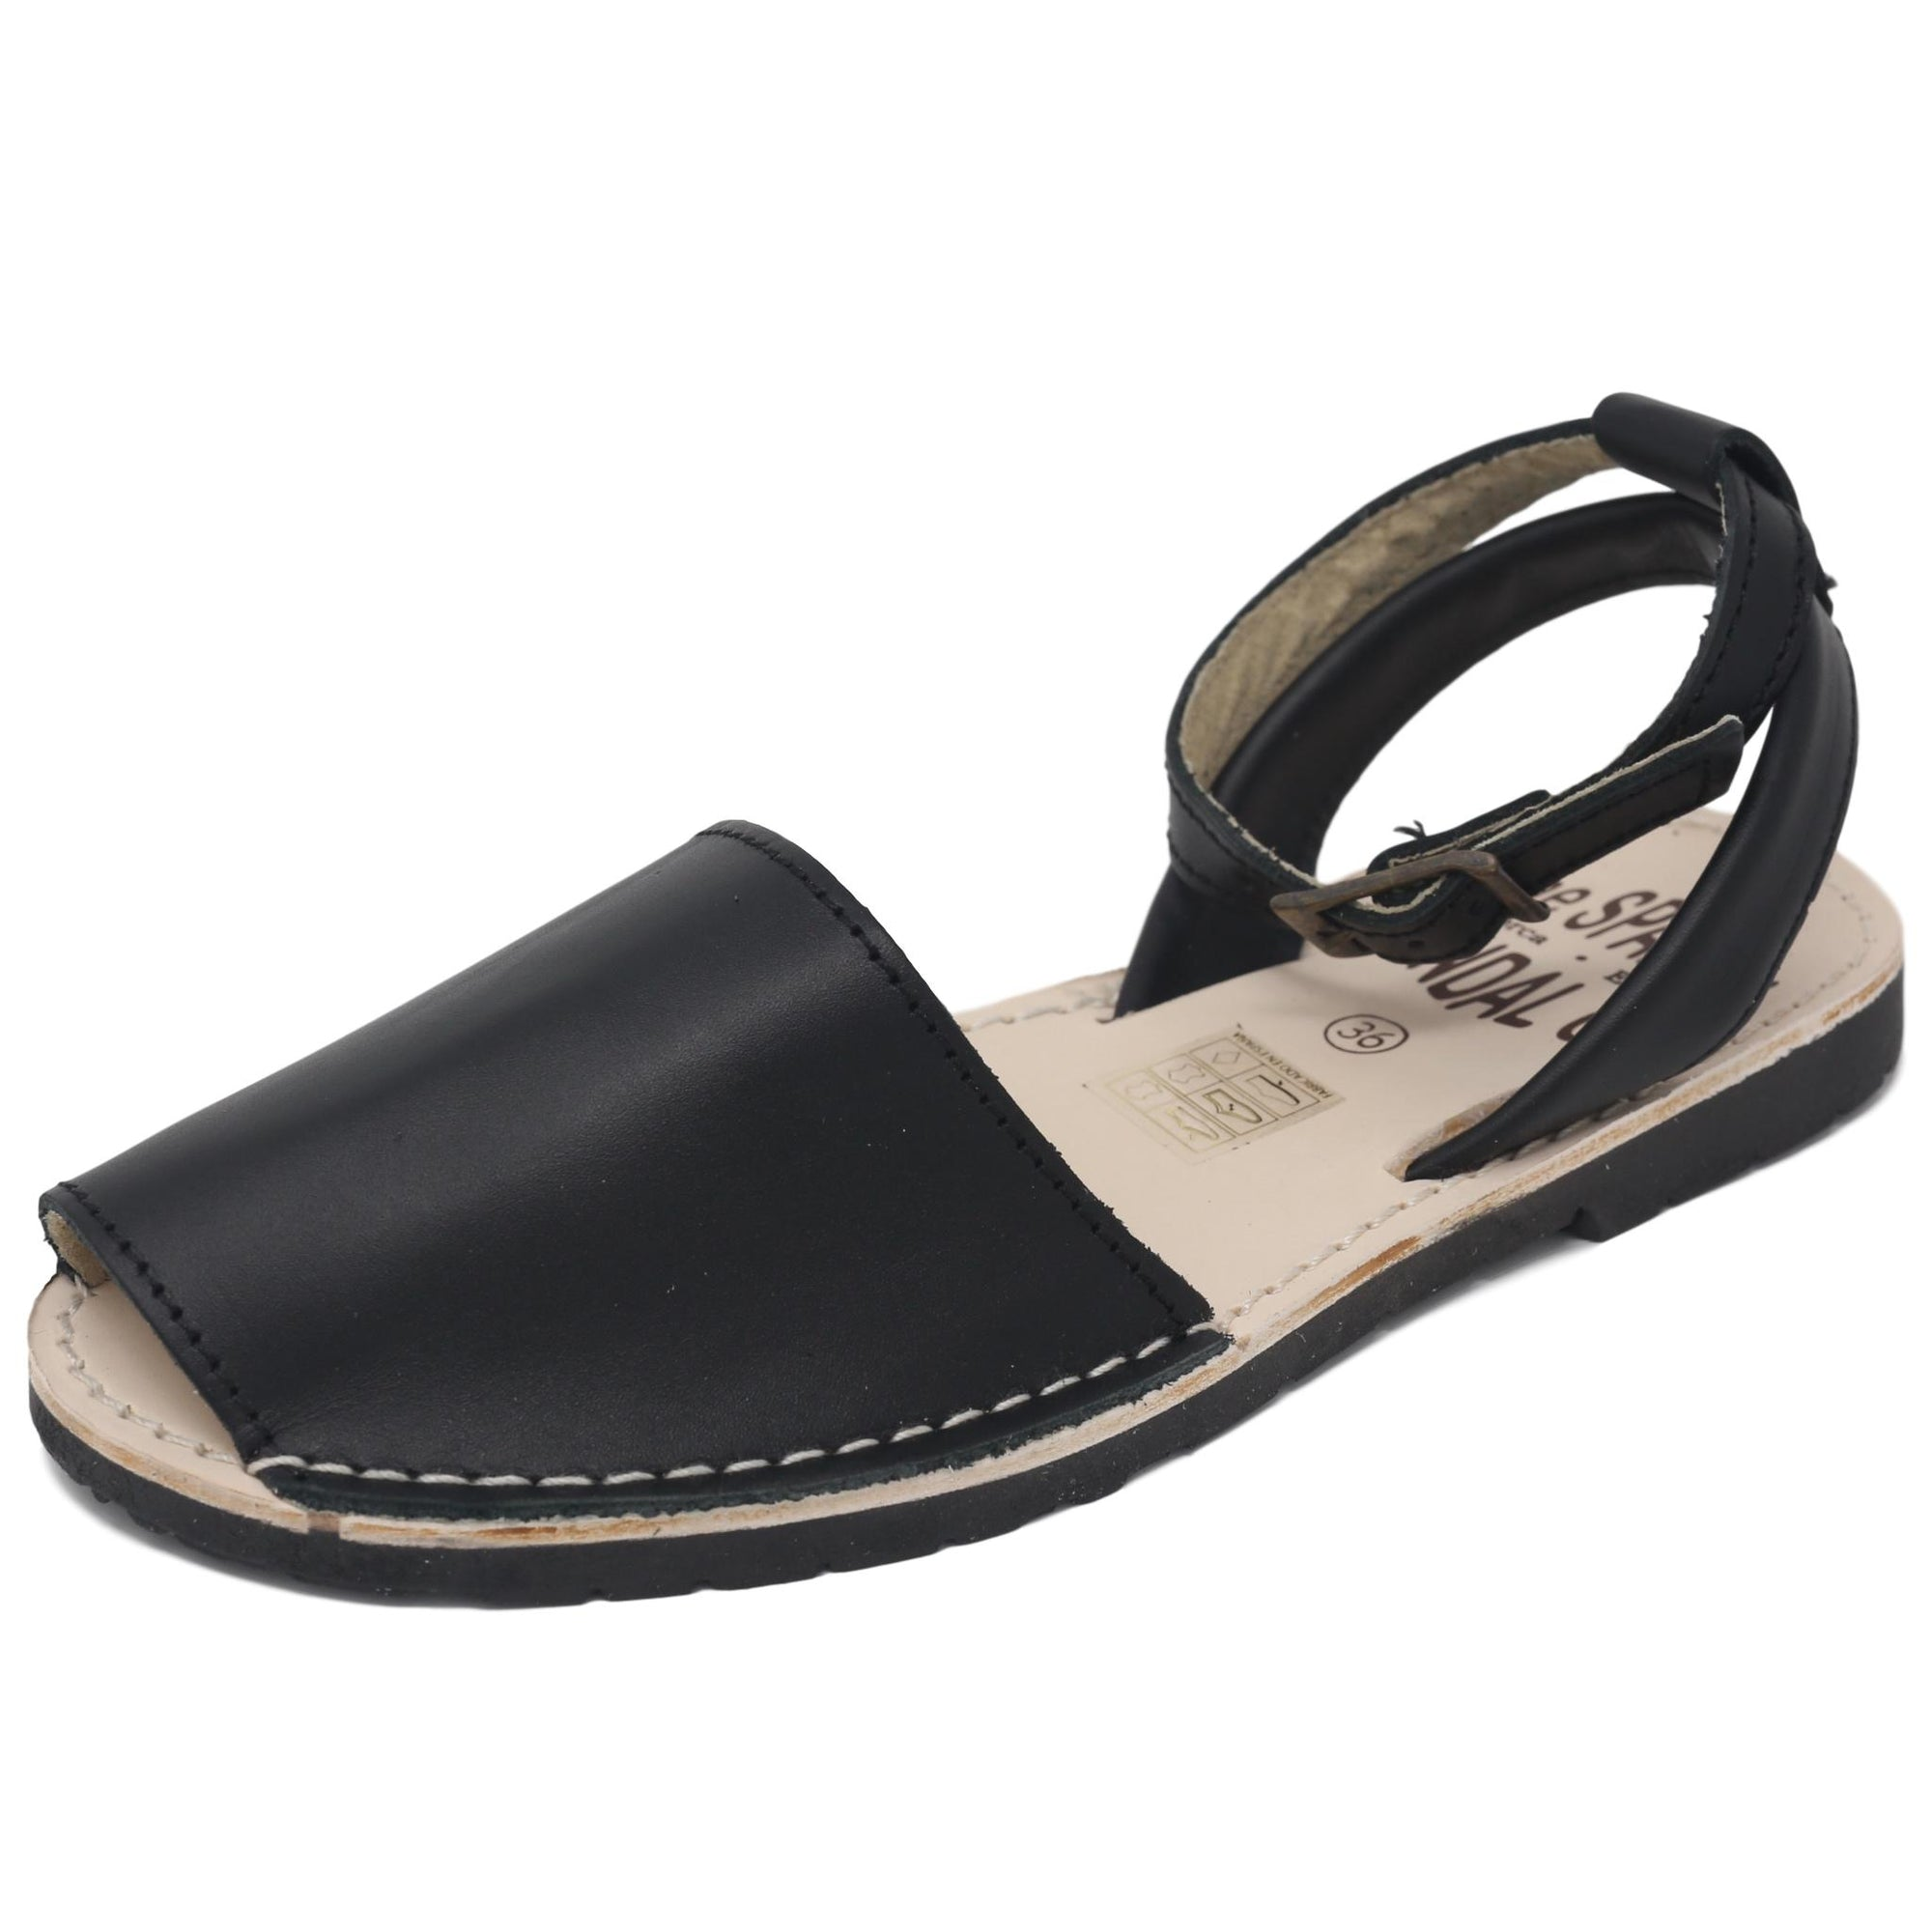 Black sandals with strap - diagonal view